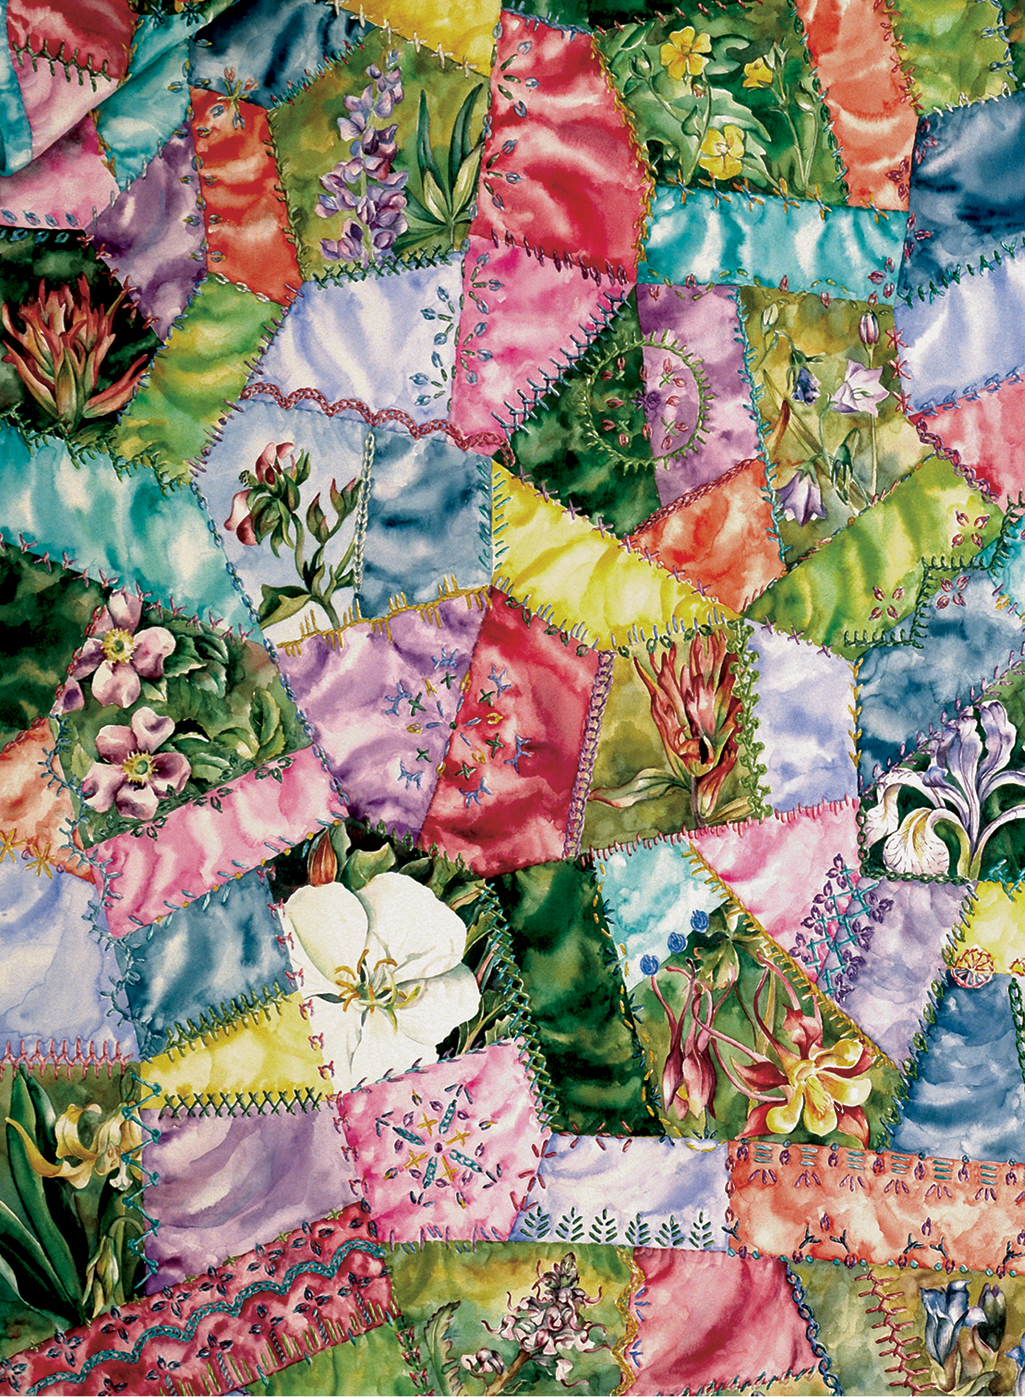 cathy weber - art - watercolor - creation - stitcher - stitch - montana- wildflower - crazy - quilt